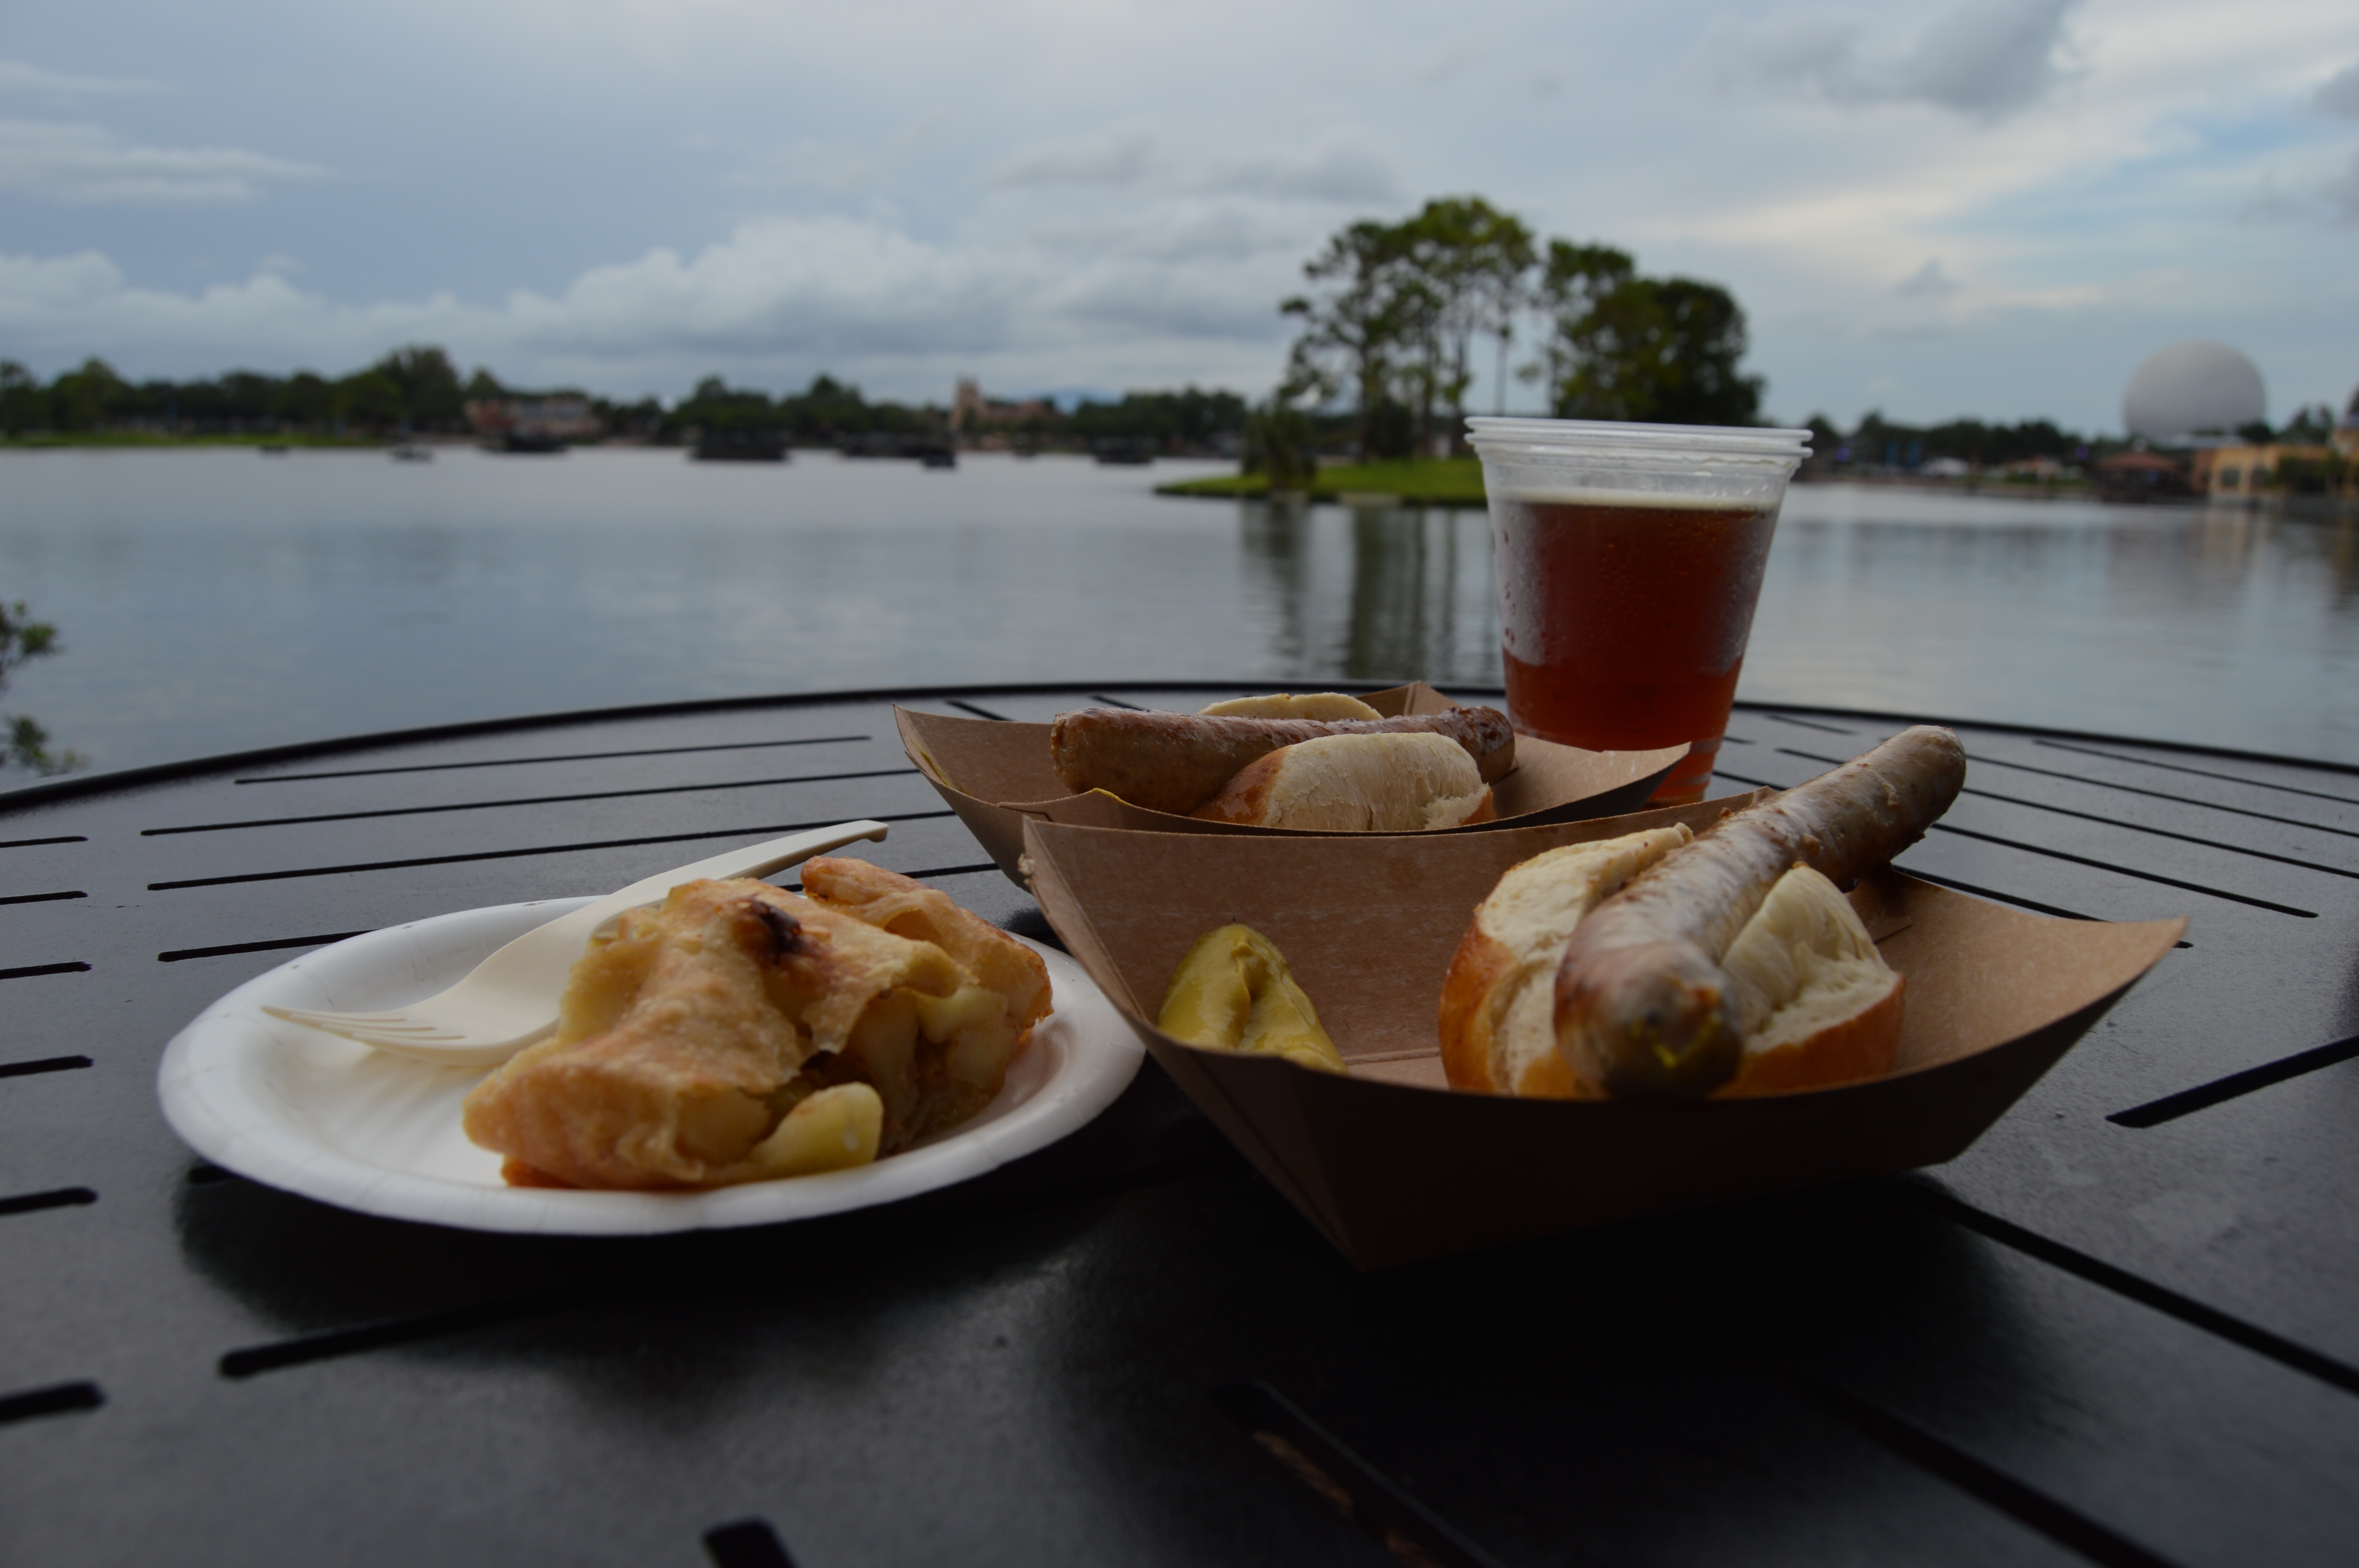 Apple strudel, brats on pretzel buns, and a glass of beer